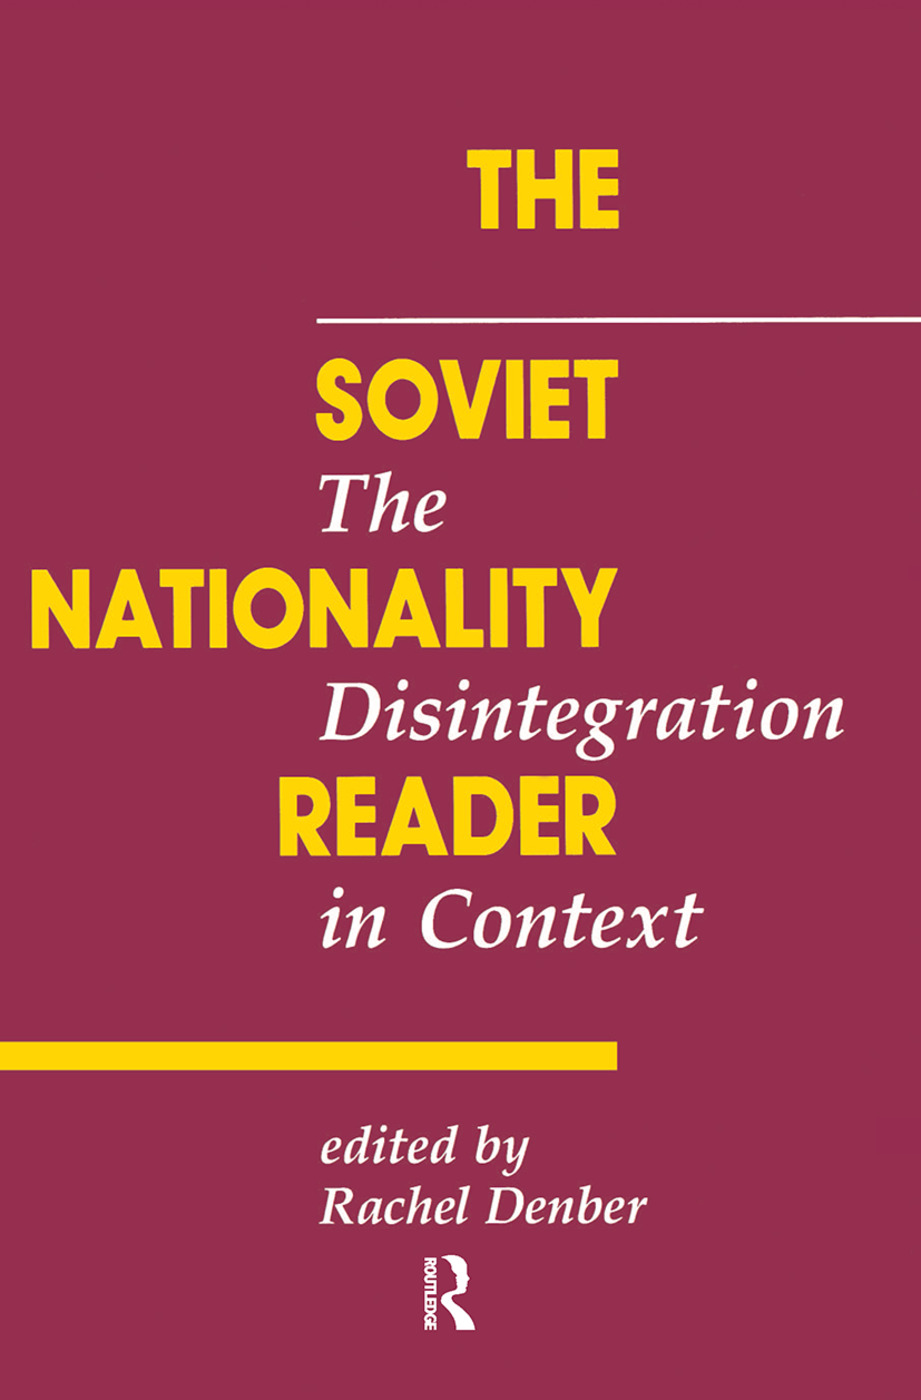 The Soviet Nationality Reader: The Disintegration In Context, 1st Edition (Hardback) book cover